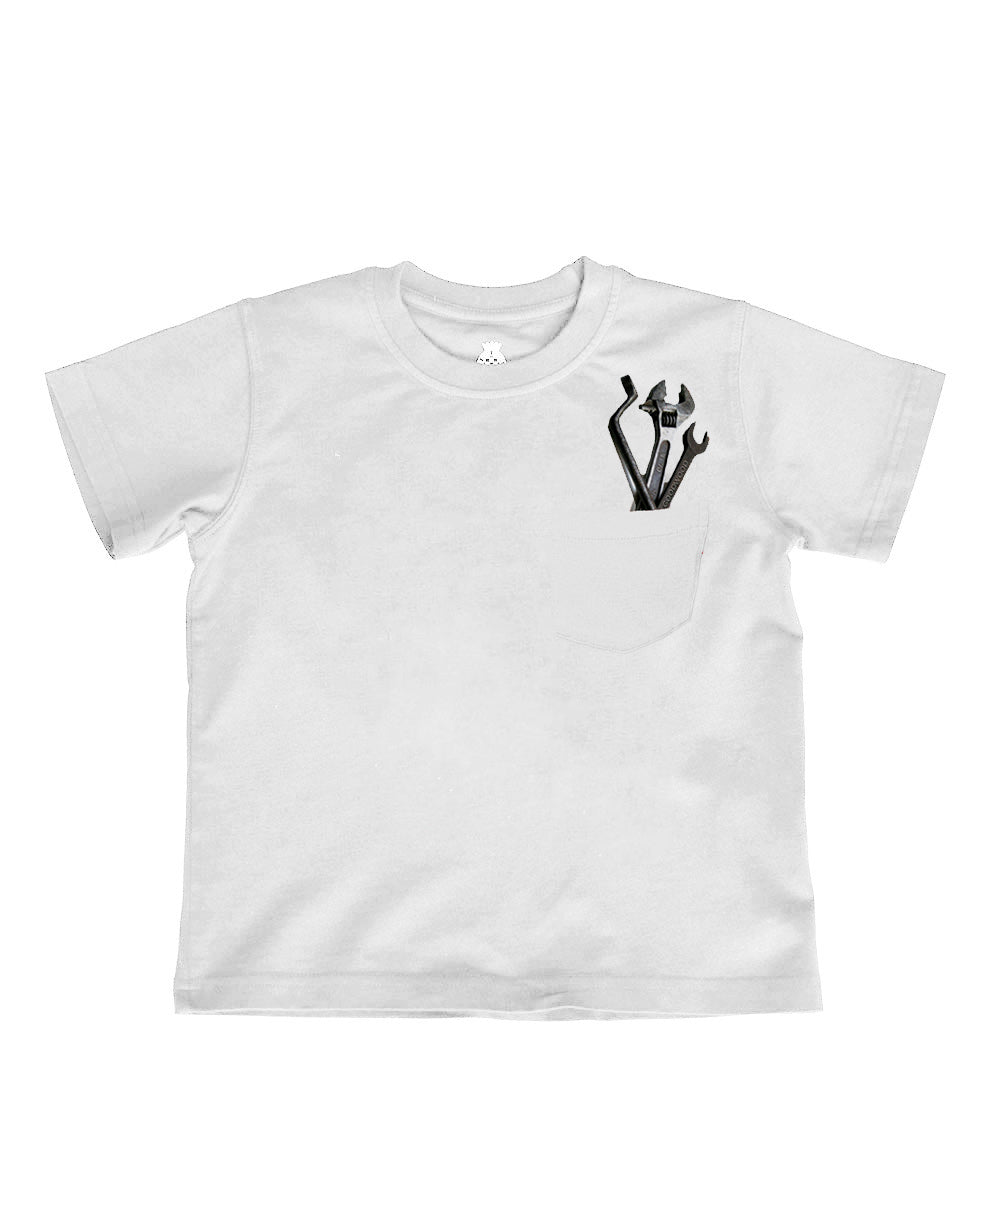 Children's White Spanner T-Shirt